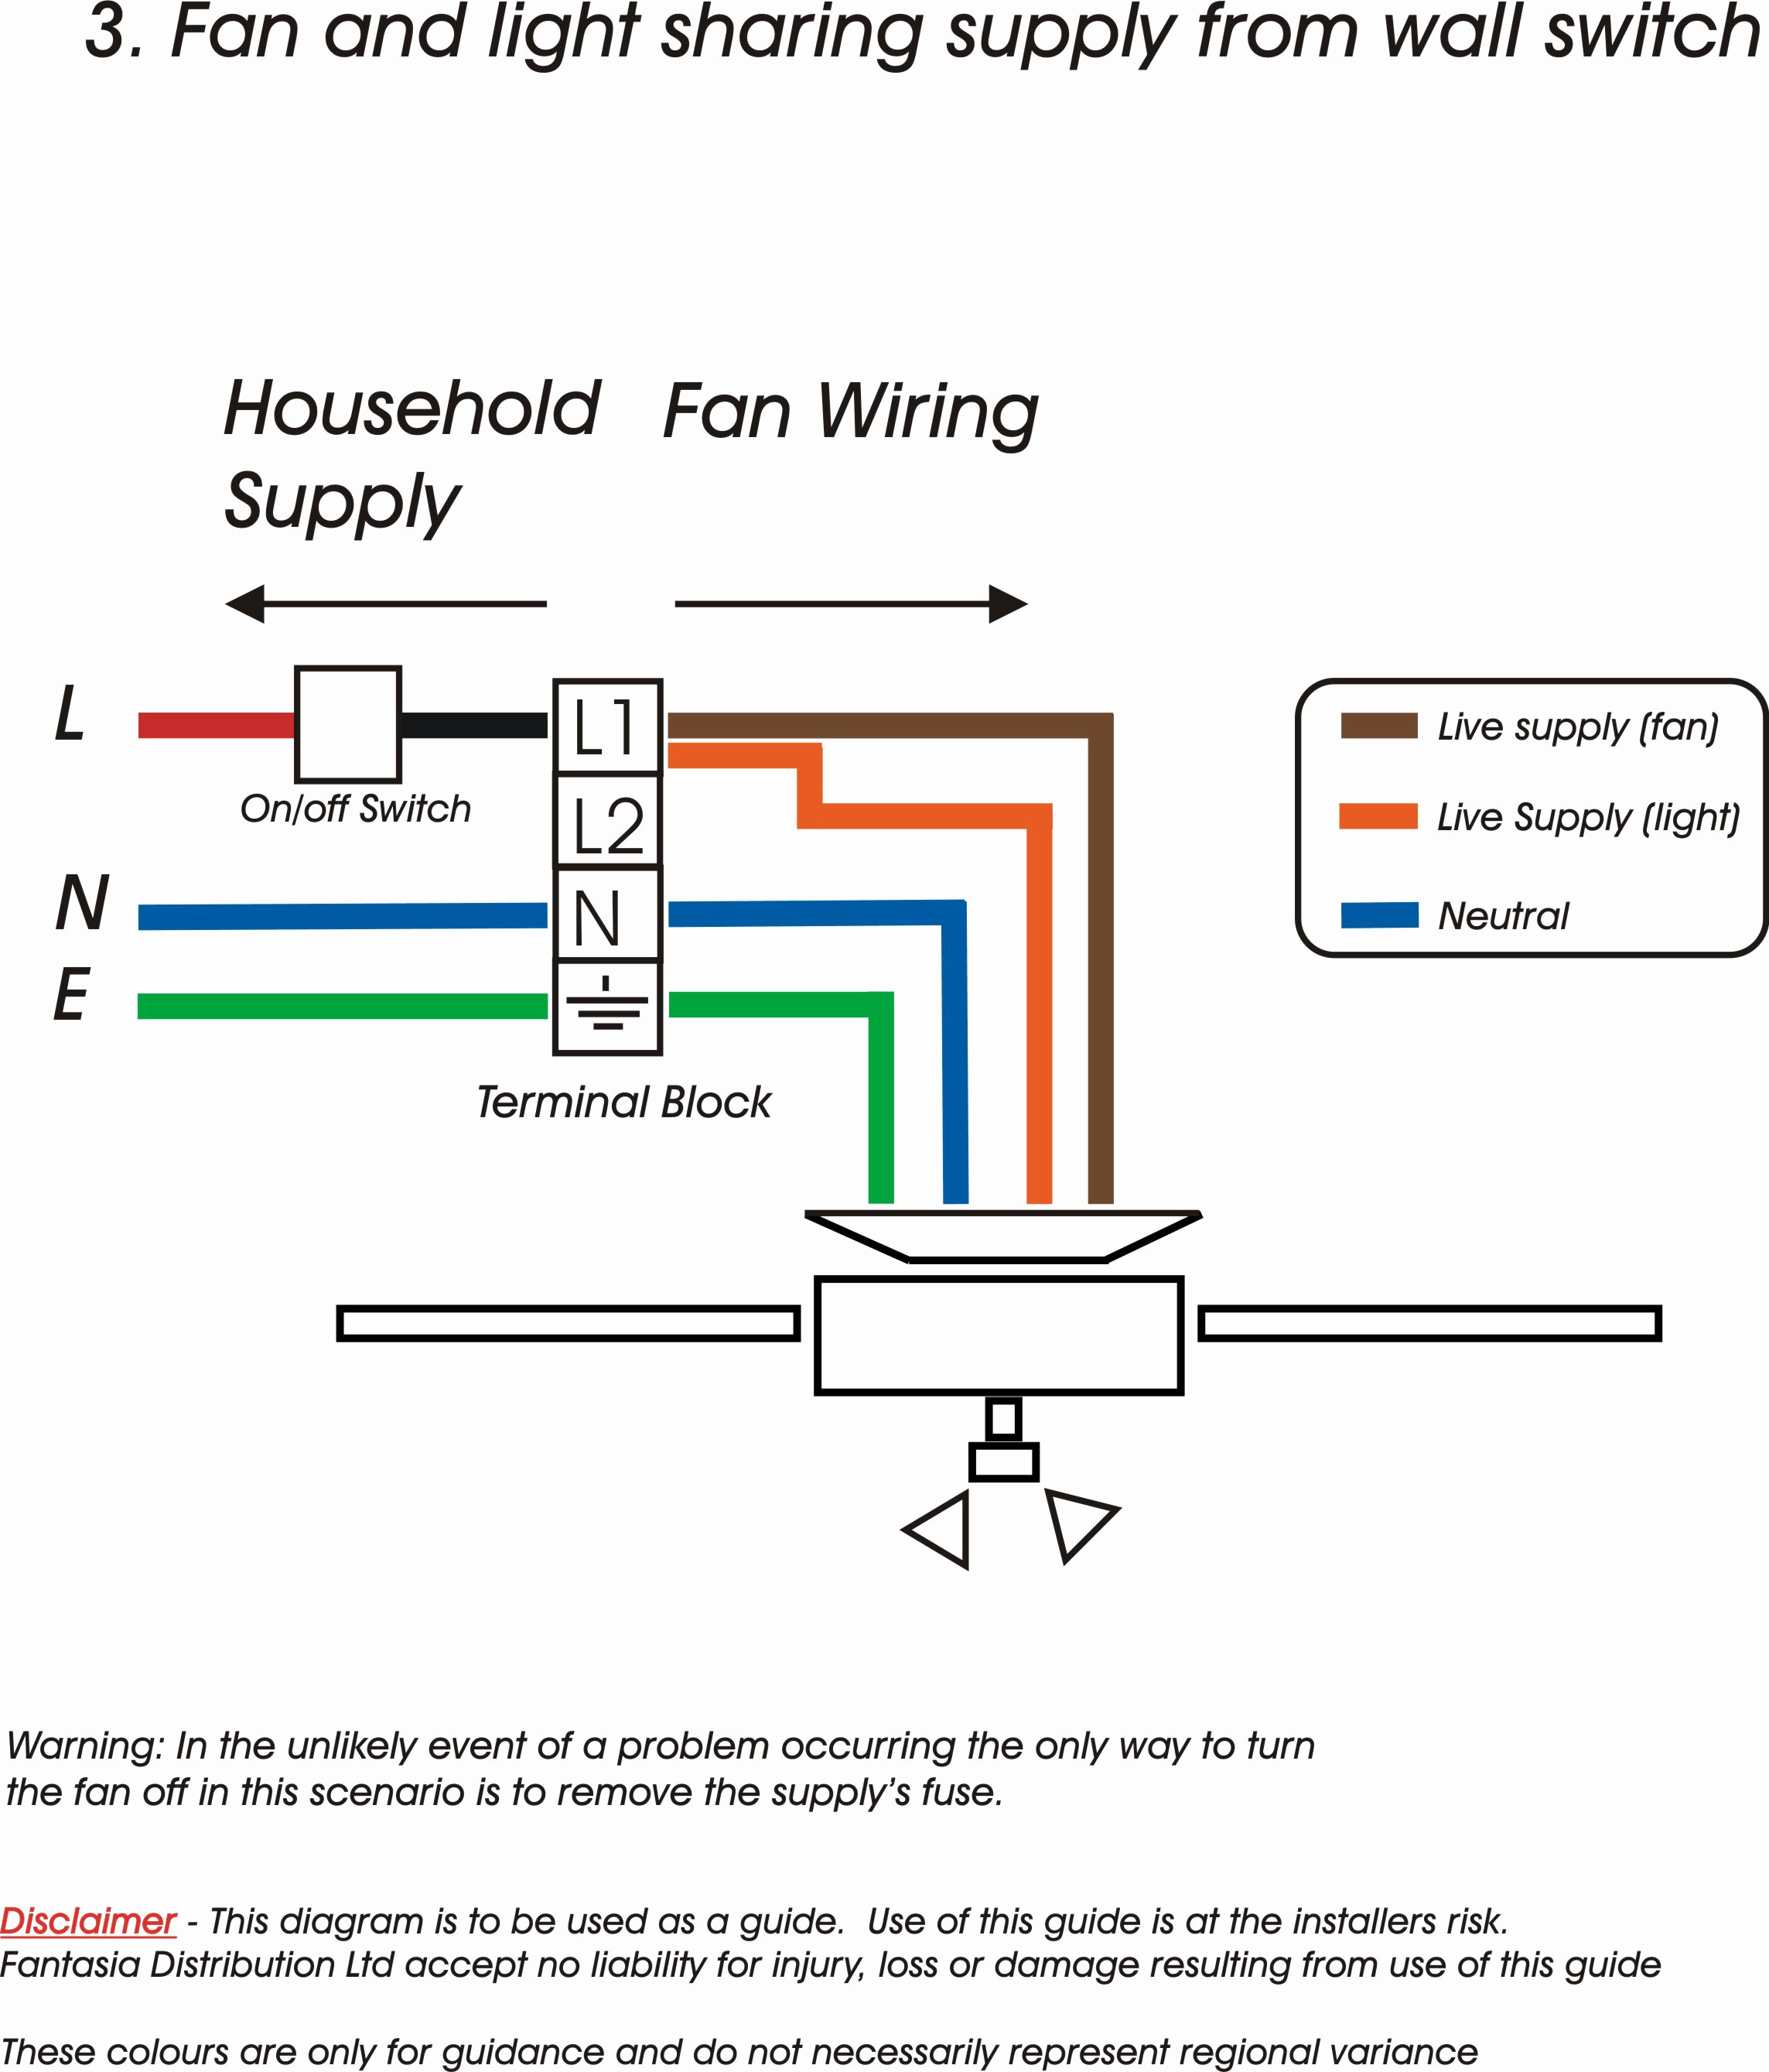 Harbor Breeze Ceiling Fan Remote Wiring Diagram Gallery ... on harbor breeze fan switch diagram, harbor breeze ceiling fan replacement, harbor breeze fan switch schematic, harbor breeze ceiling fan white, harbor breeze fan troubleshooting, harbor breeze ceiling fan small room,